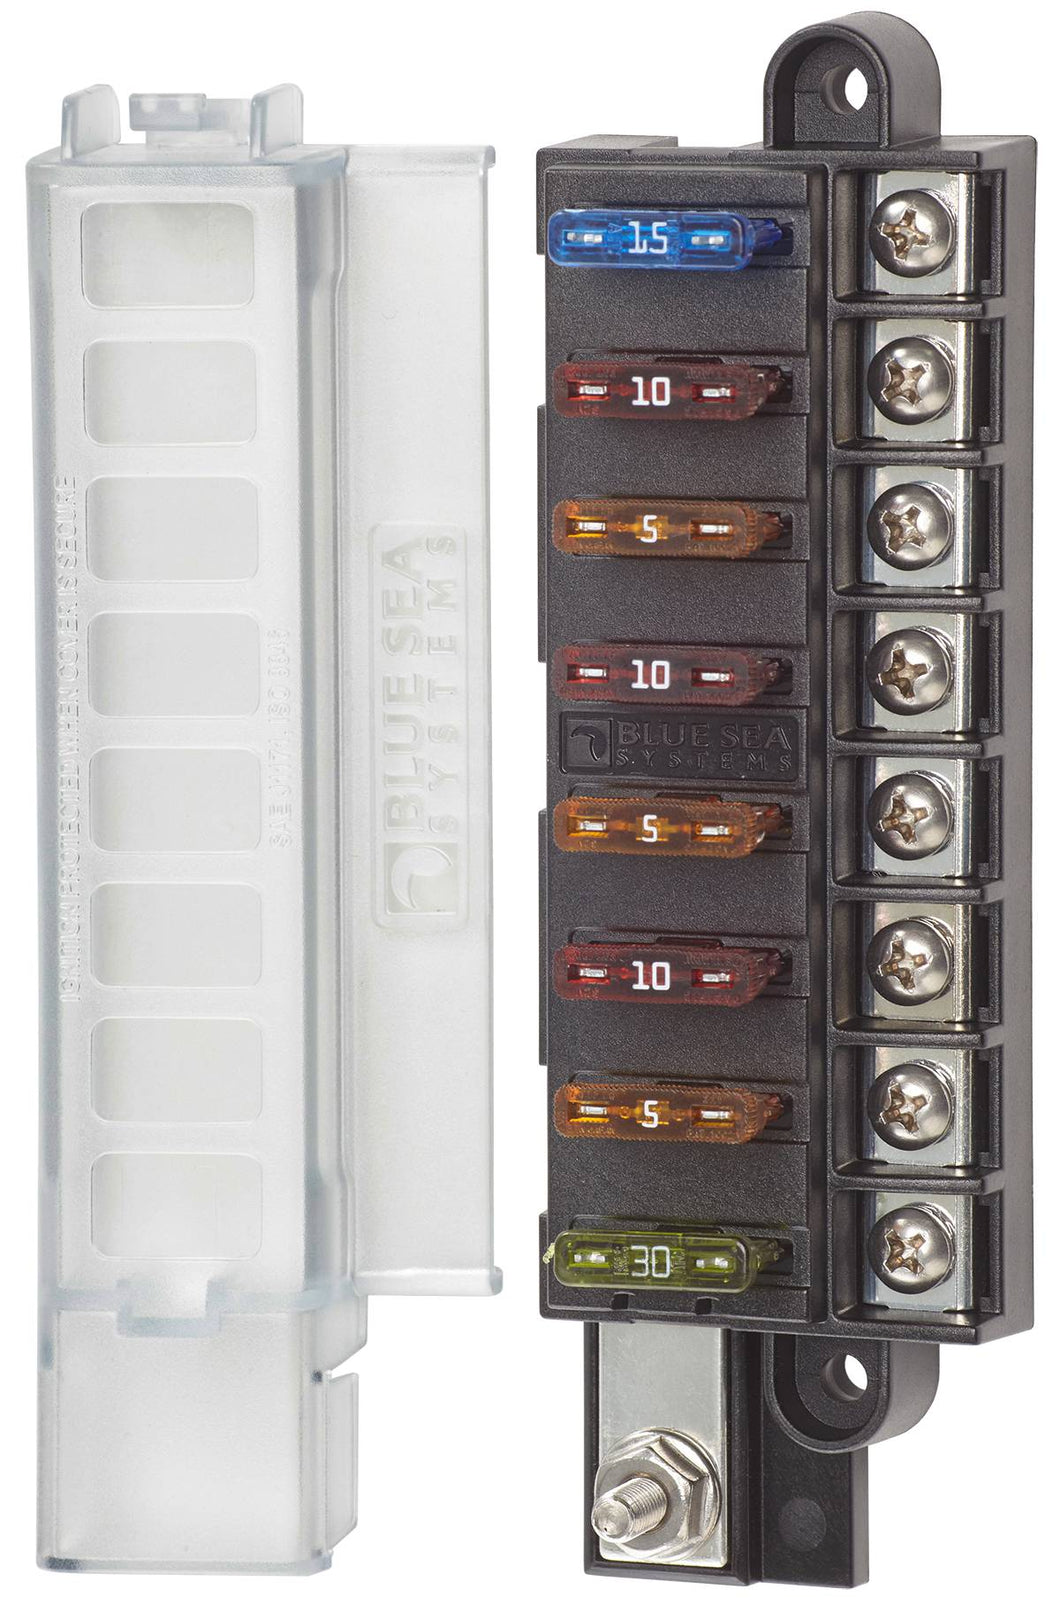 Blue Sea 8 Circuit ST Blade Compact Fuse Box with Cover